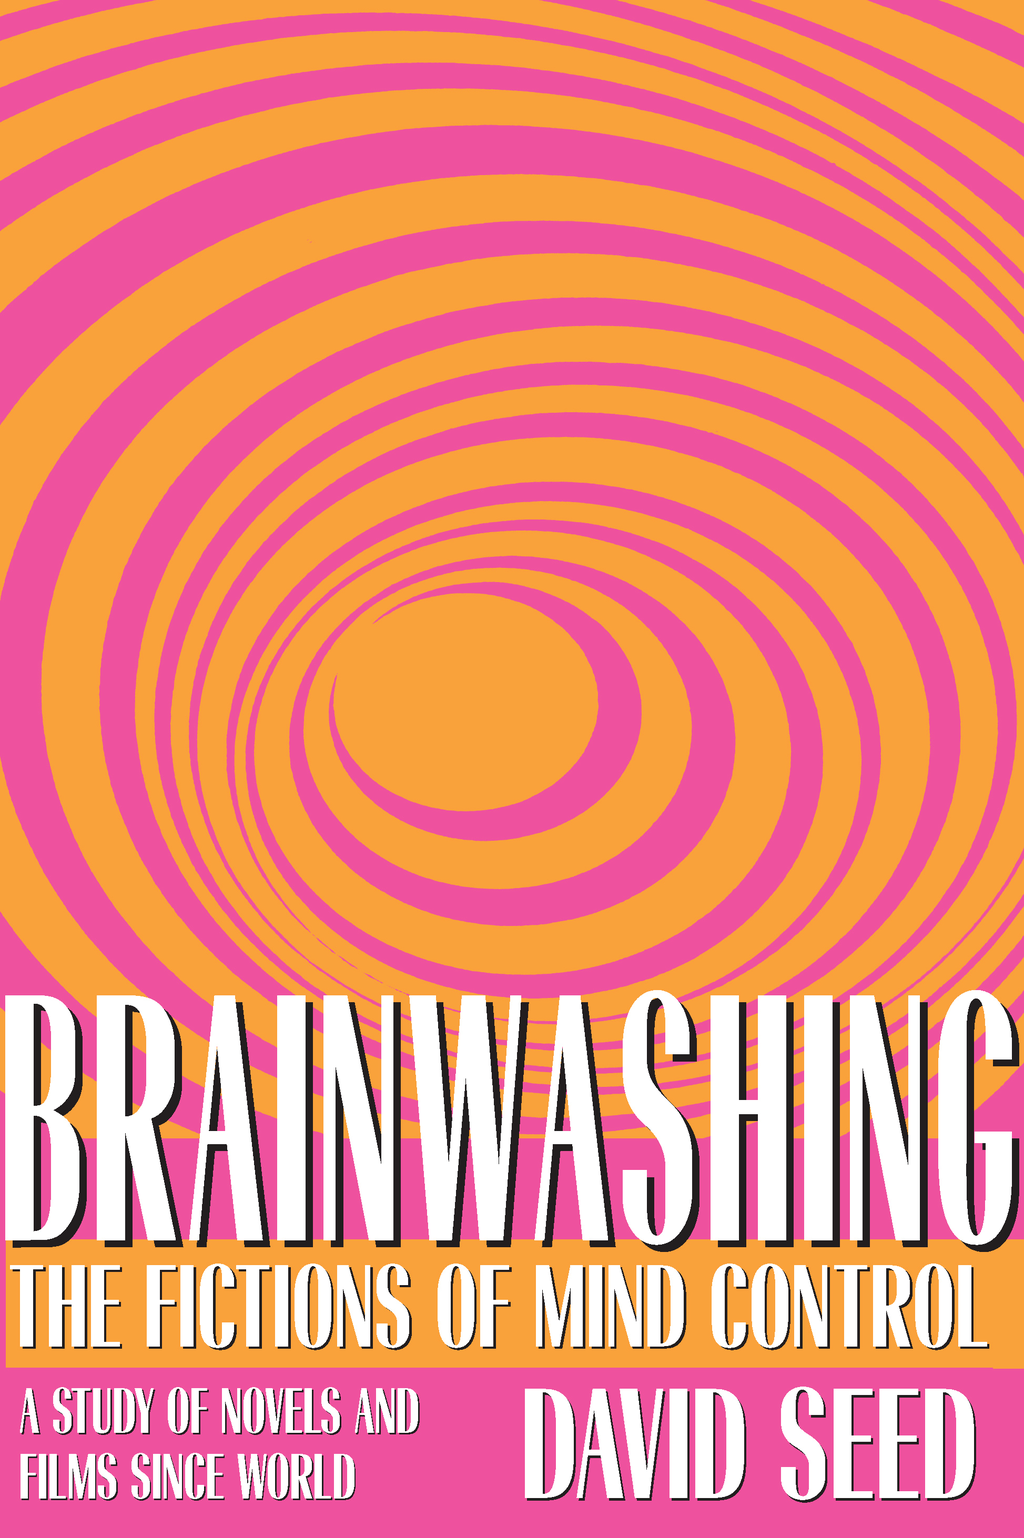 Brainwashing: The Fictions of Mind Control